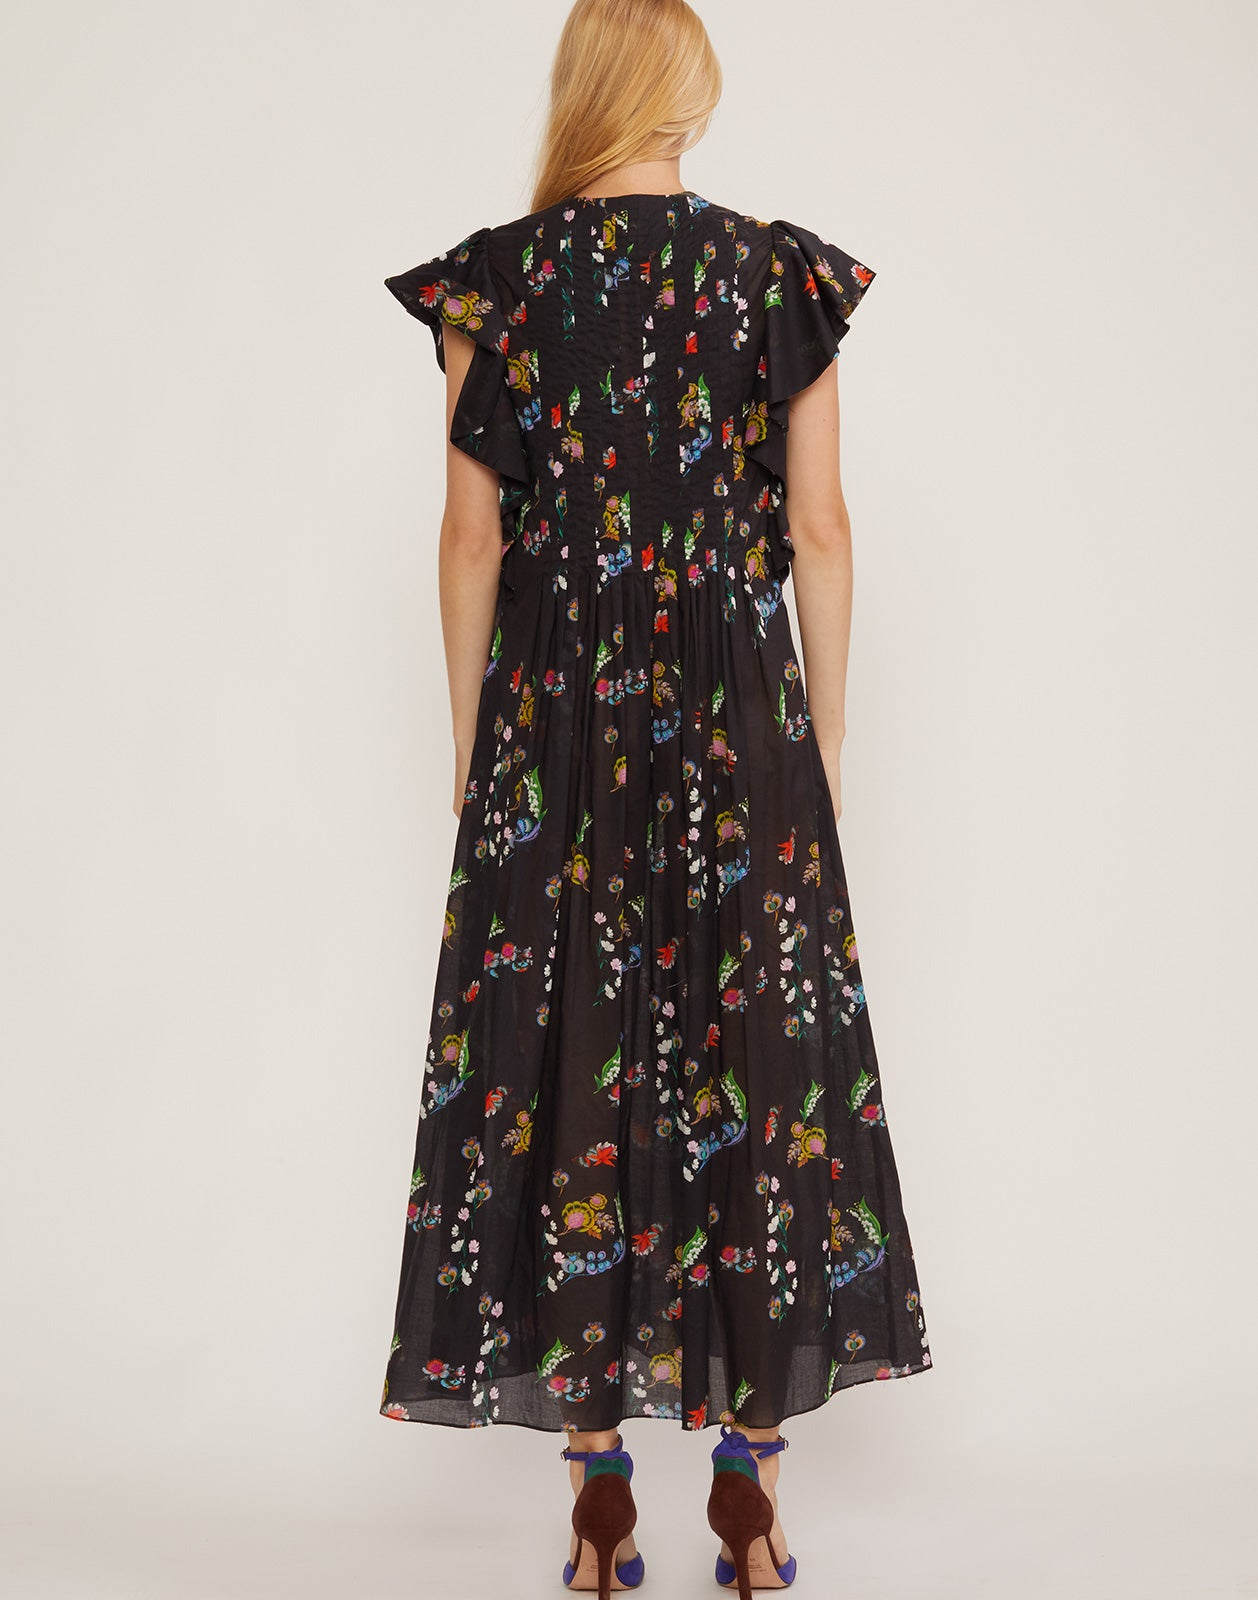 Back view of lightweight cotton maxi dress in garden floral print.